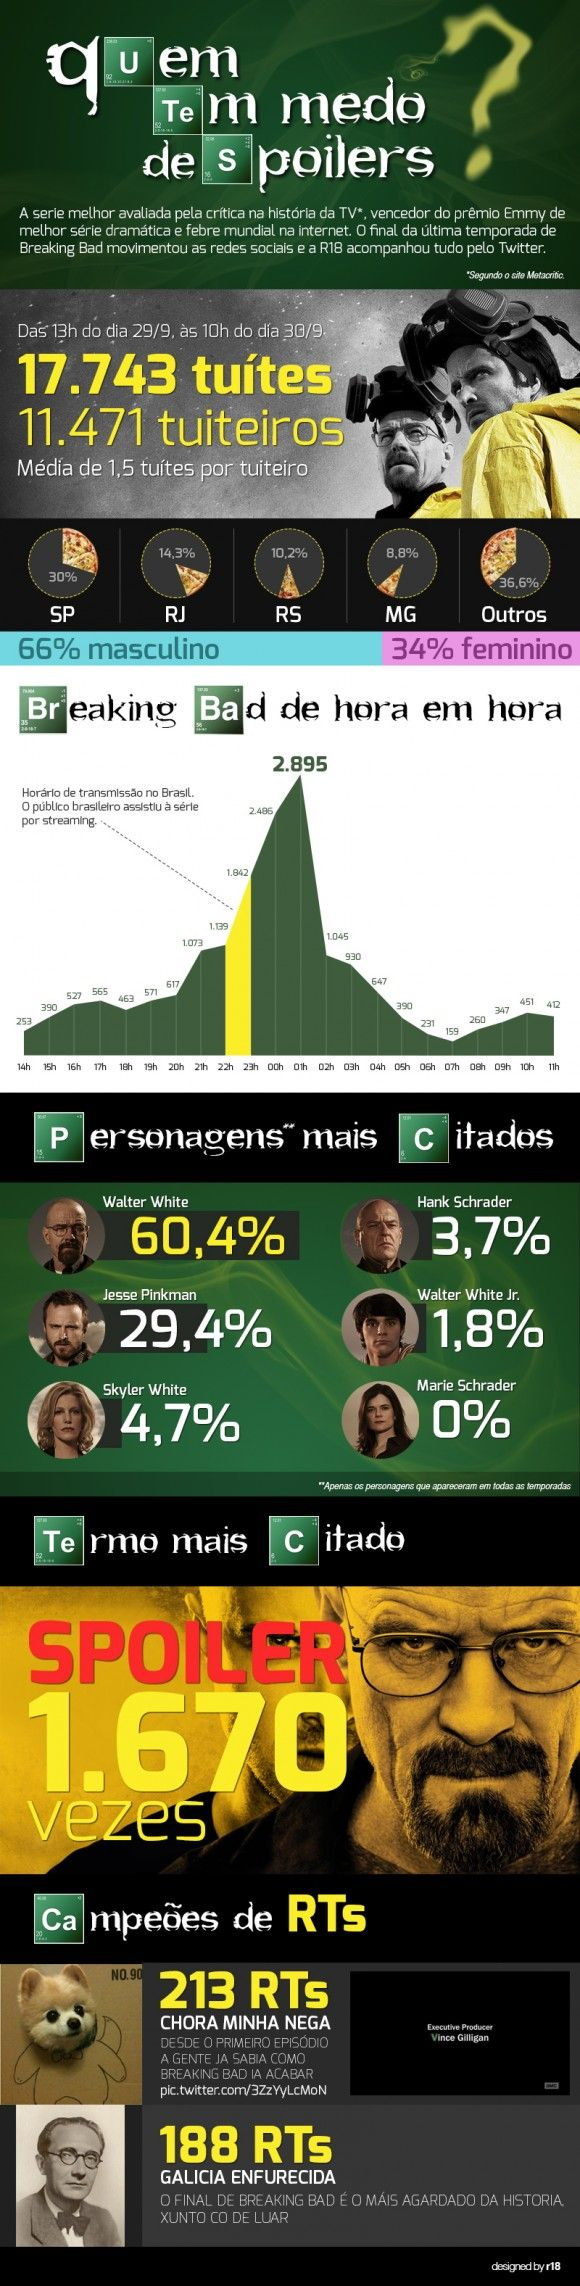 Os números do último episódio de Breaking Bad no Brasil #infographic